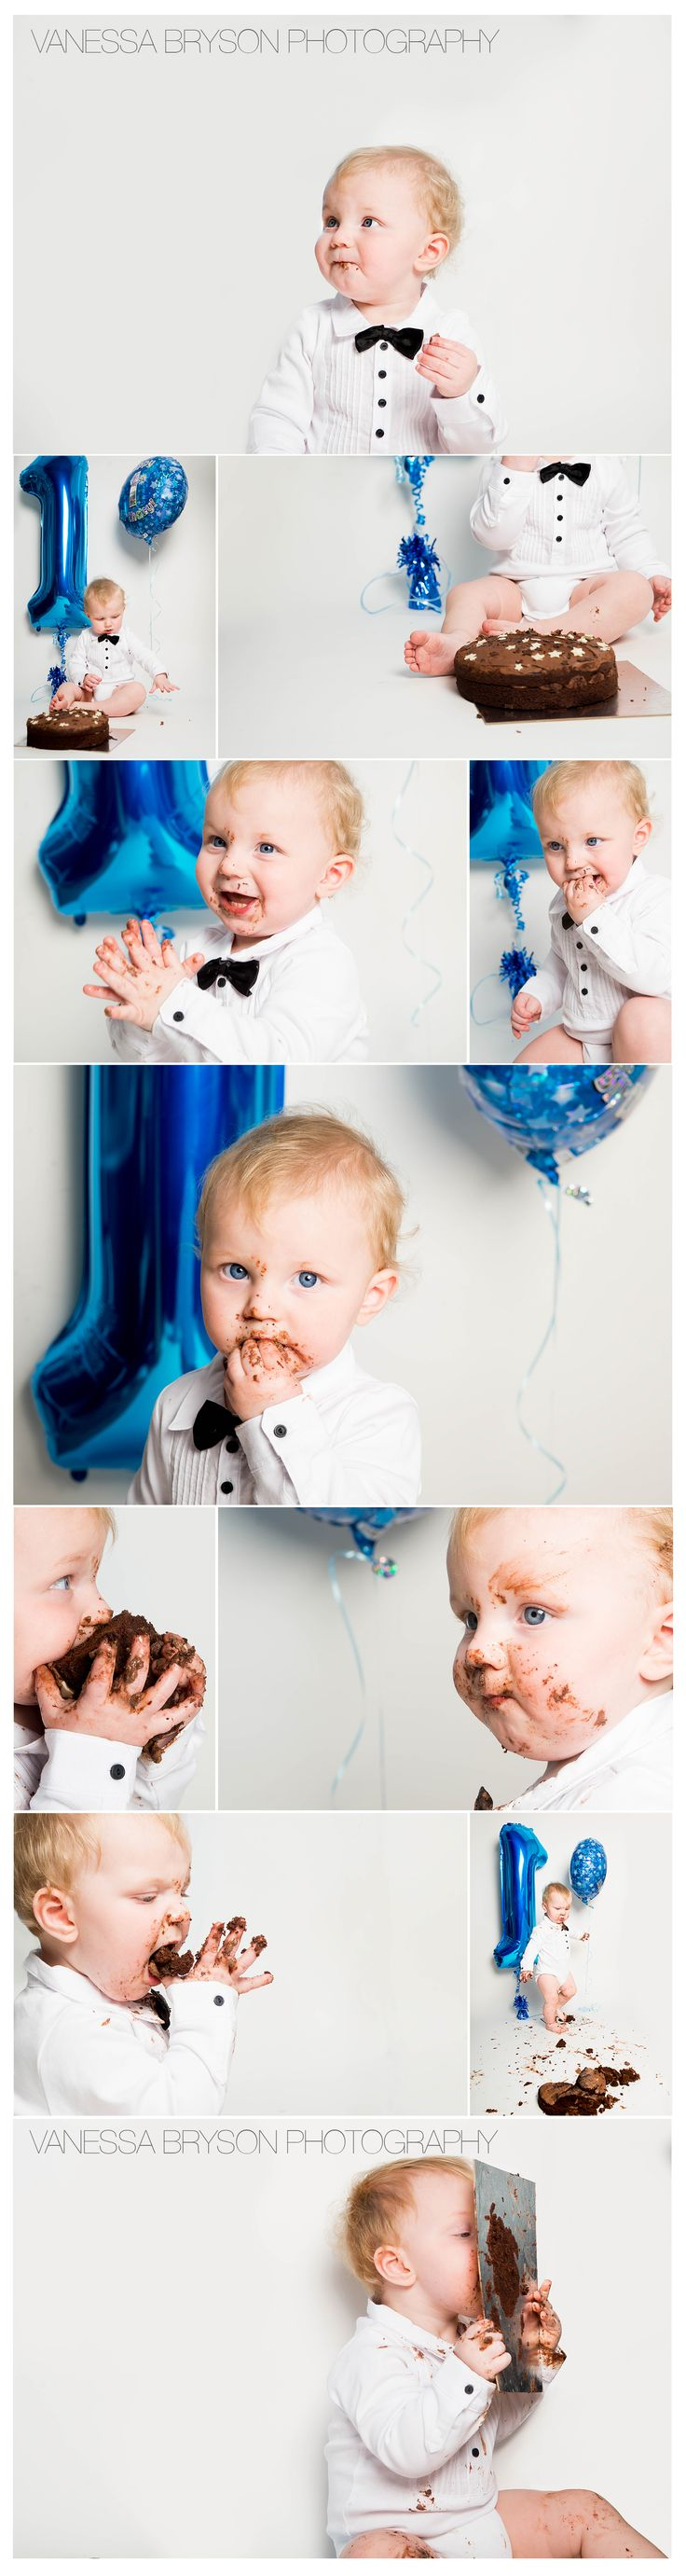 Cake smash for Elliot's 1st birthday!   See more here at www.facebook.com/vanessabrysonphotography